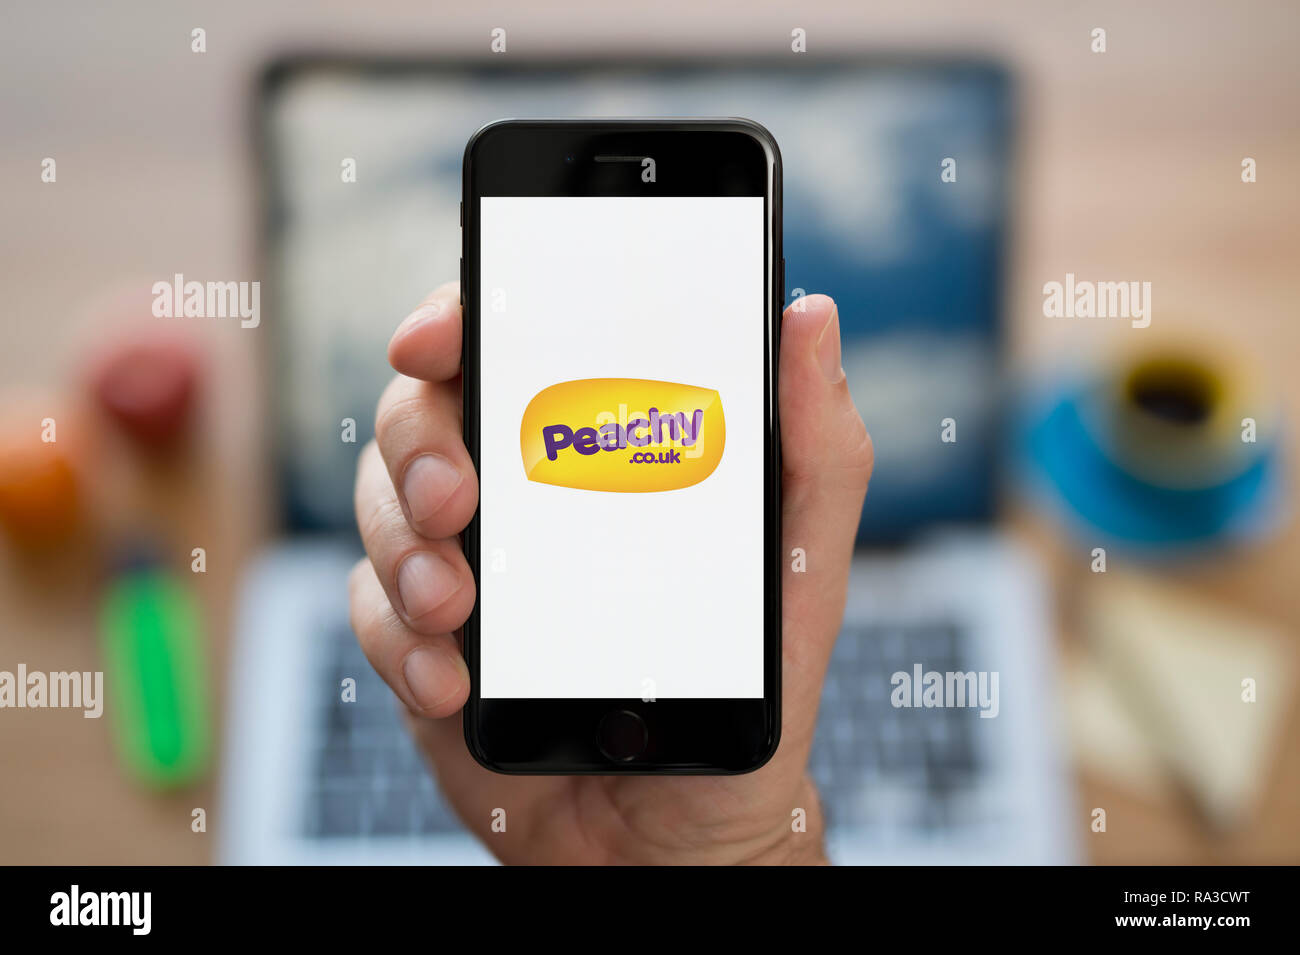 A man looks at his iPhone which displays the Peachy logo (Editorial use only). - Stock Image